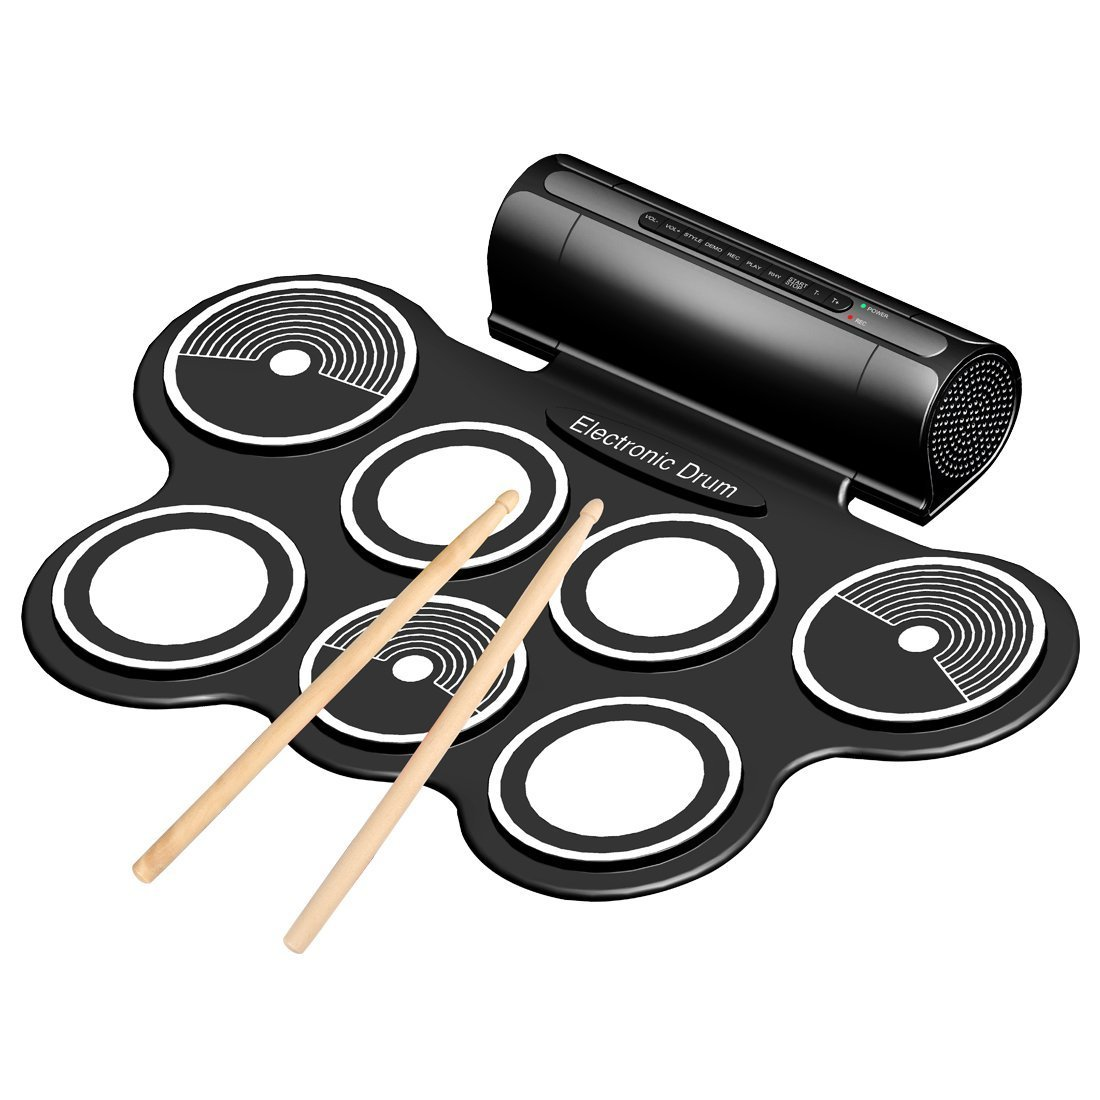 Portable 9 Pad Electronic Drum Kit with Sticks and Foot Pedals - Konix Complete Silicone Roll-Up Style Electric Drum Set by Emperor of Gadgets